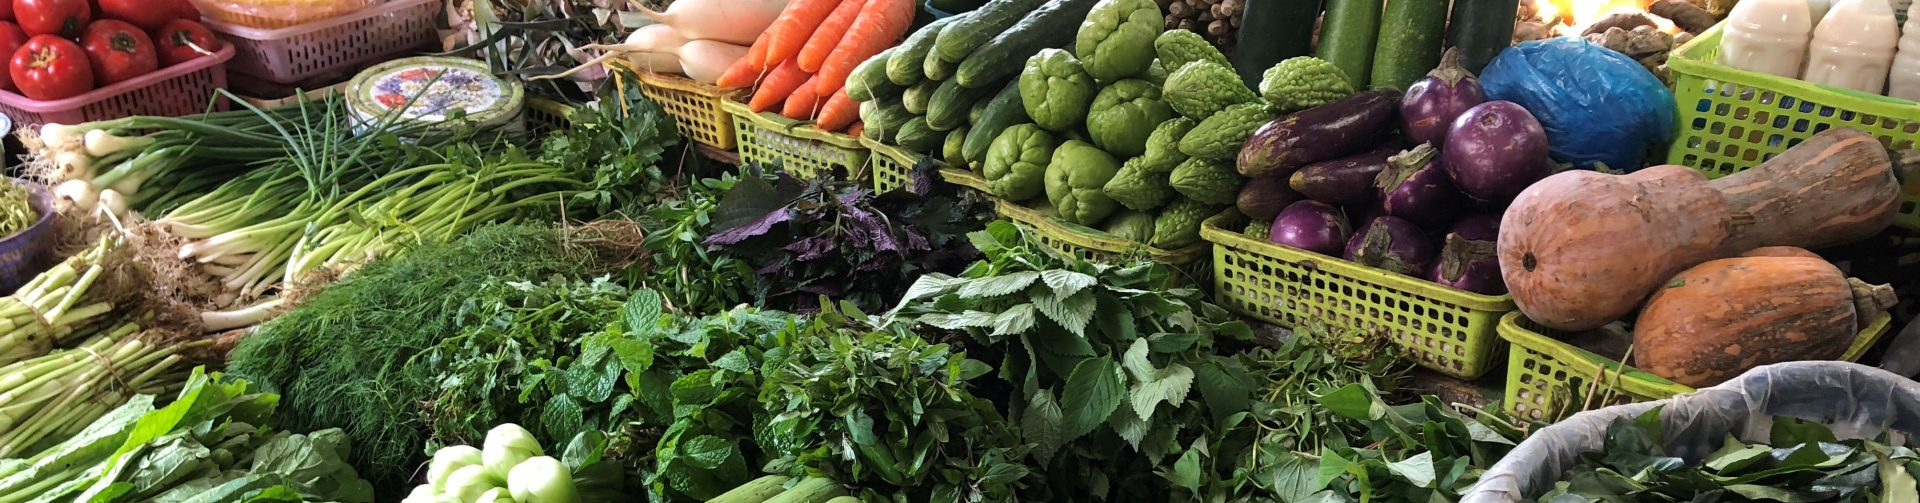 COVID-19 and Global Trade Implications for Food Systems and Healthy Diets